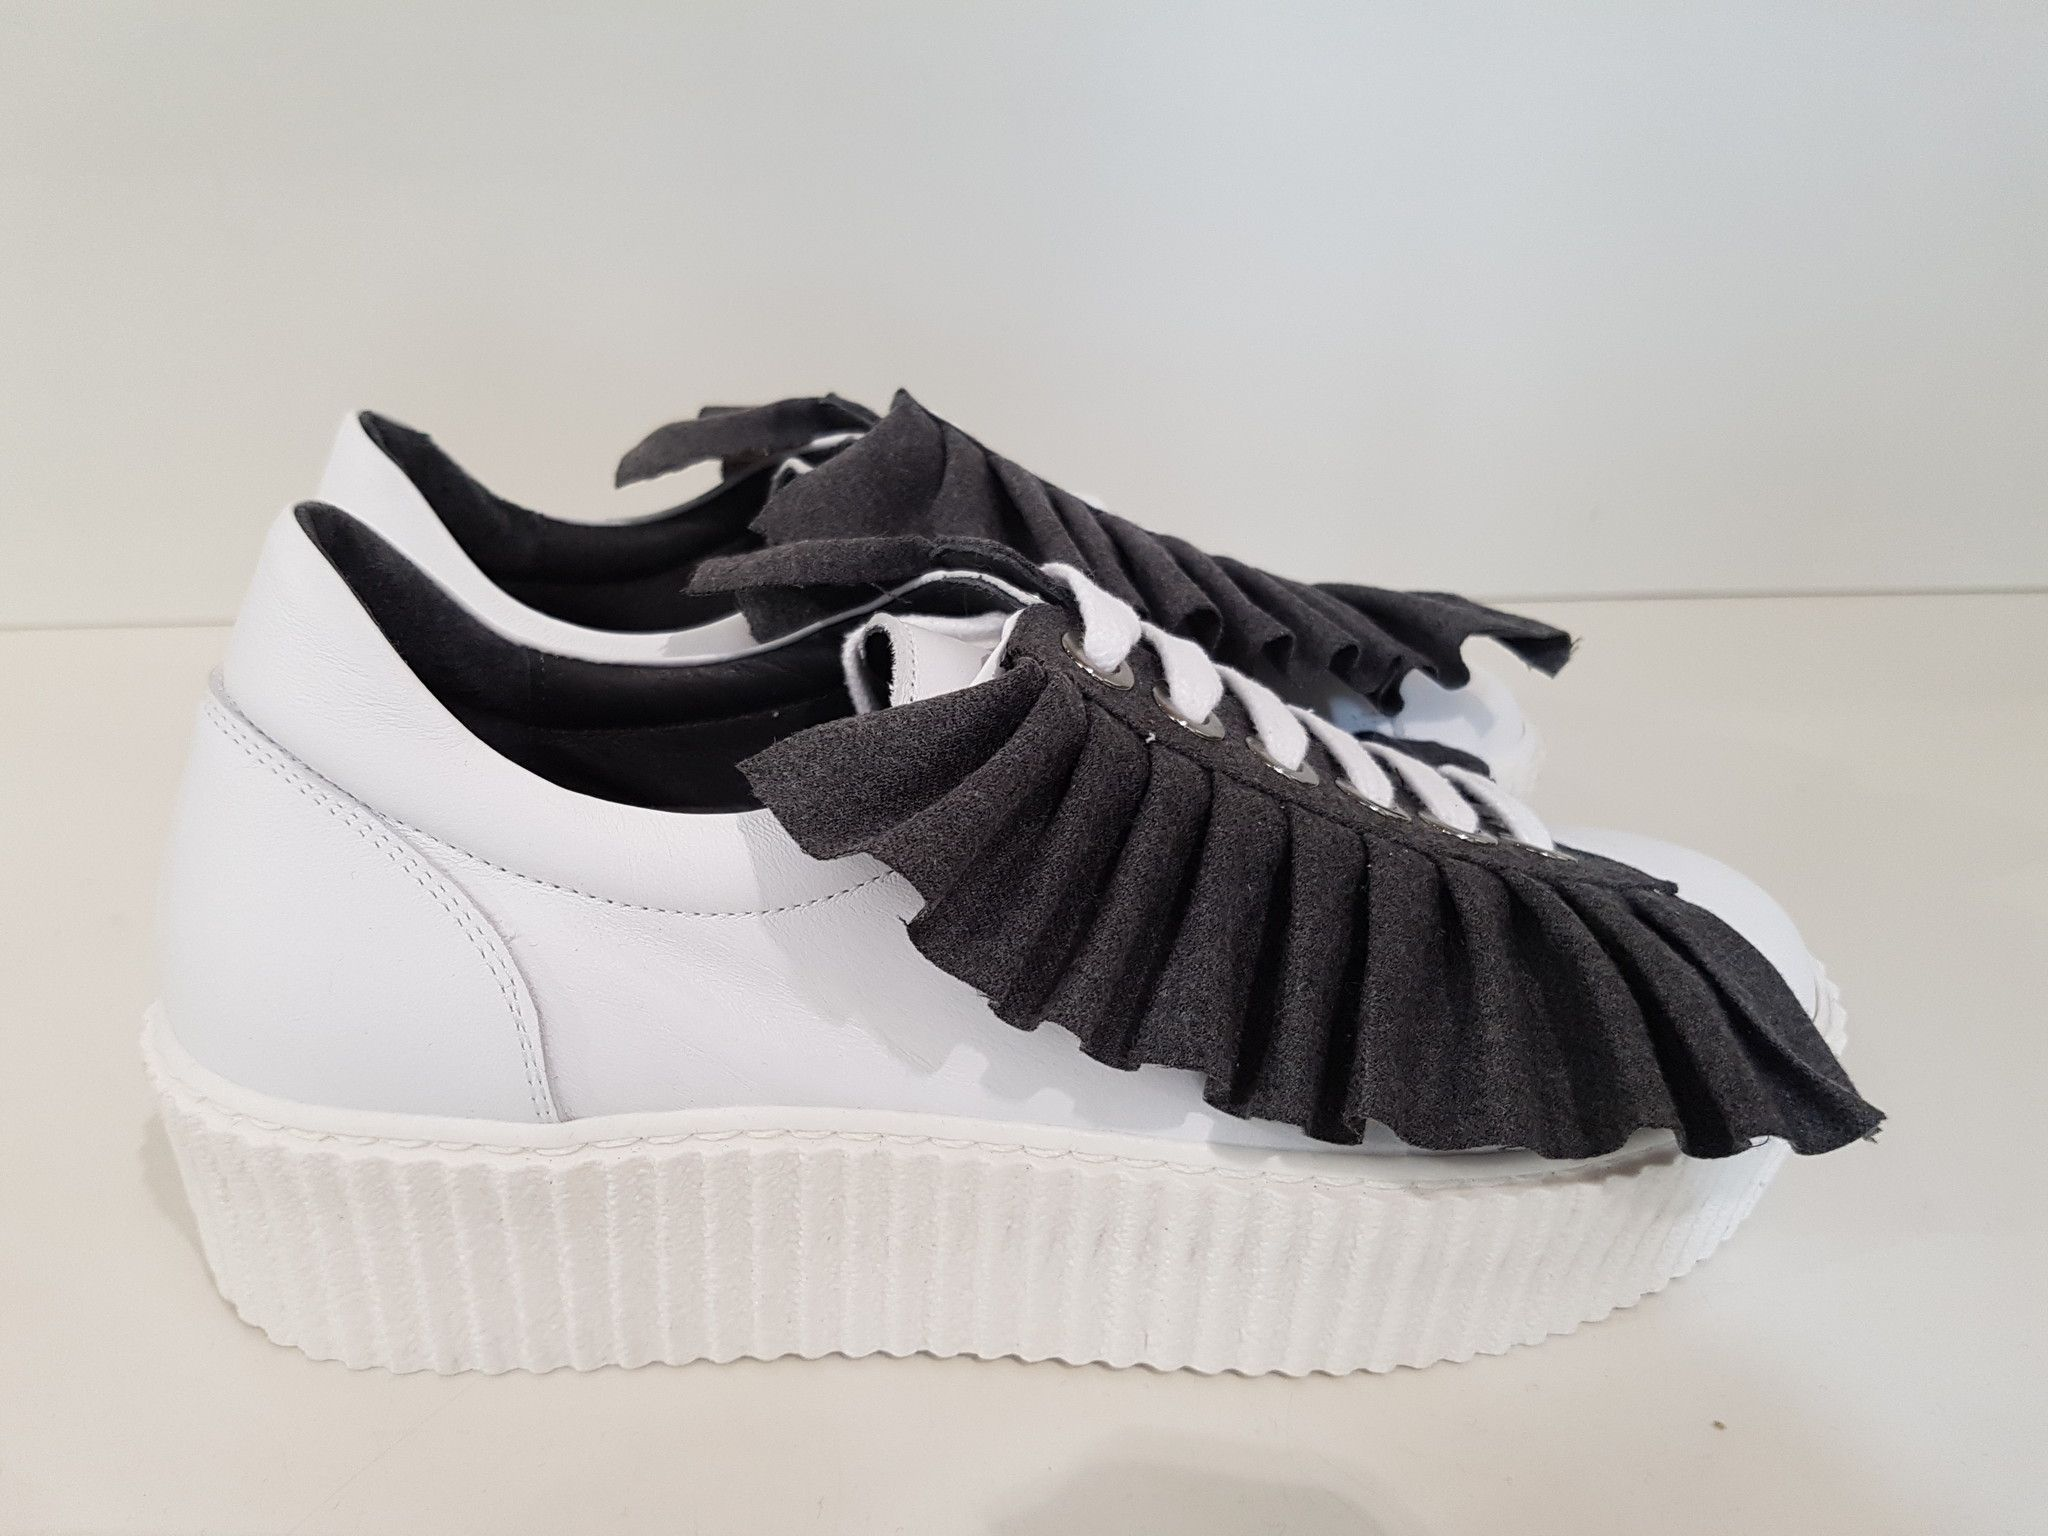 SNEAKERS ALYSI ROUCHES TESSUTO STACCABILE